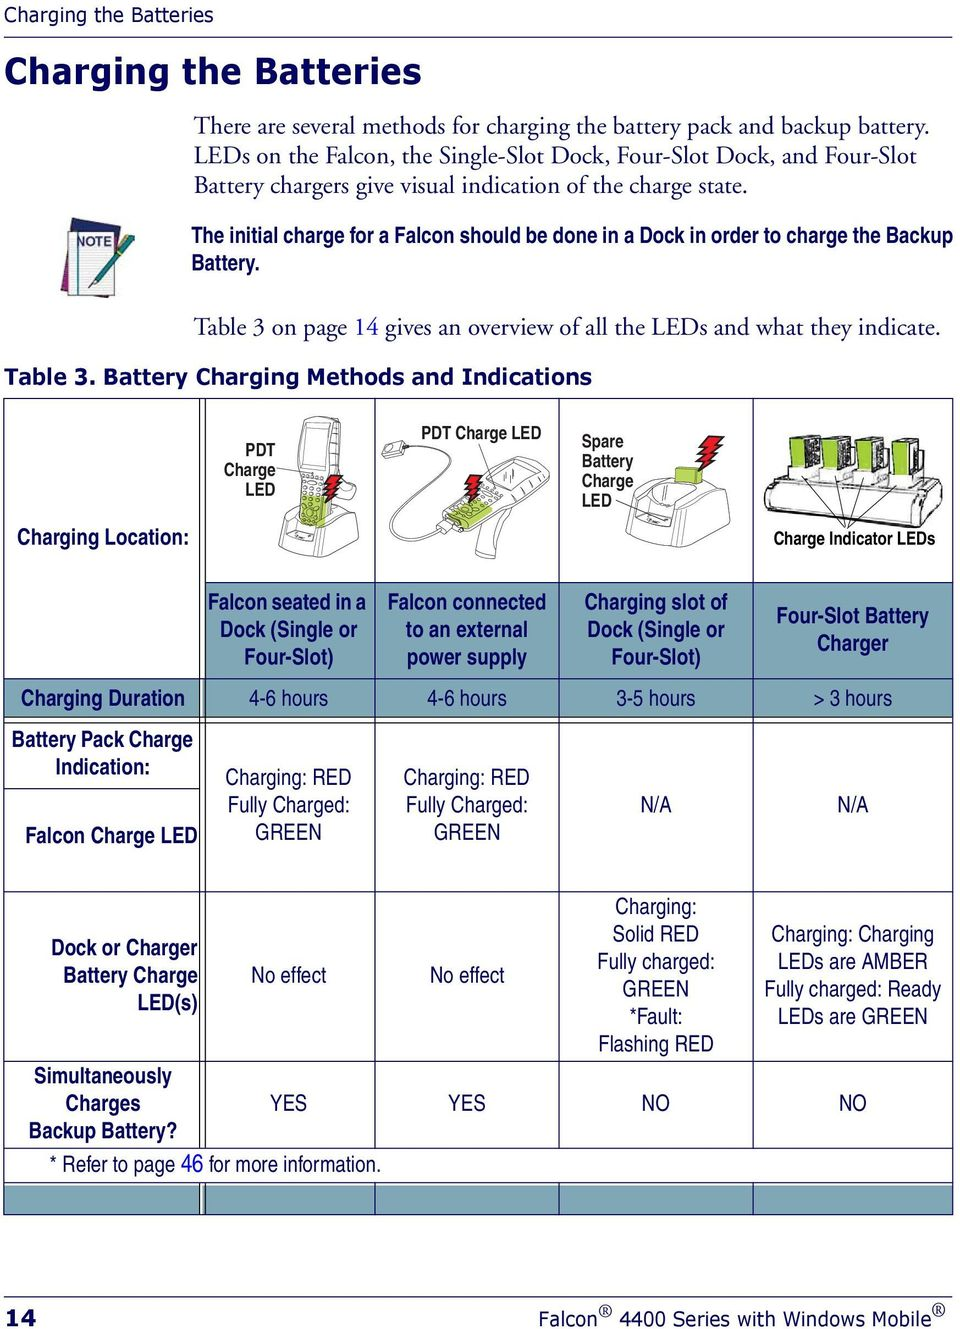 The initial charge for a Falcon should be done in a Dock in order to charge the Backup Battery. Table 3